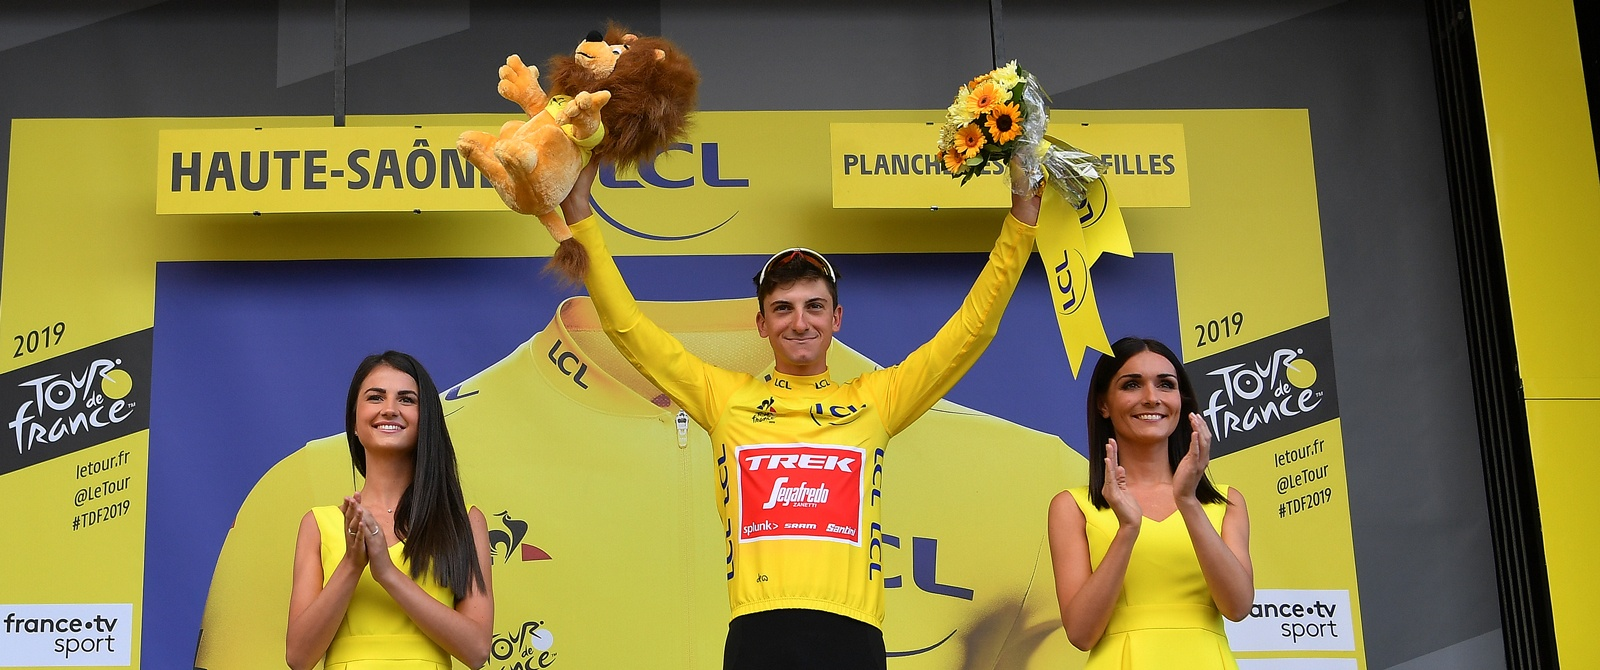 What does the yellow jersey mean in Tour de France?